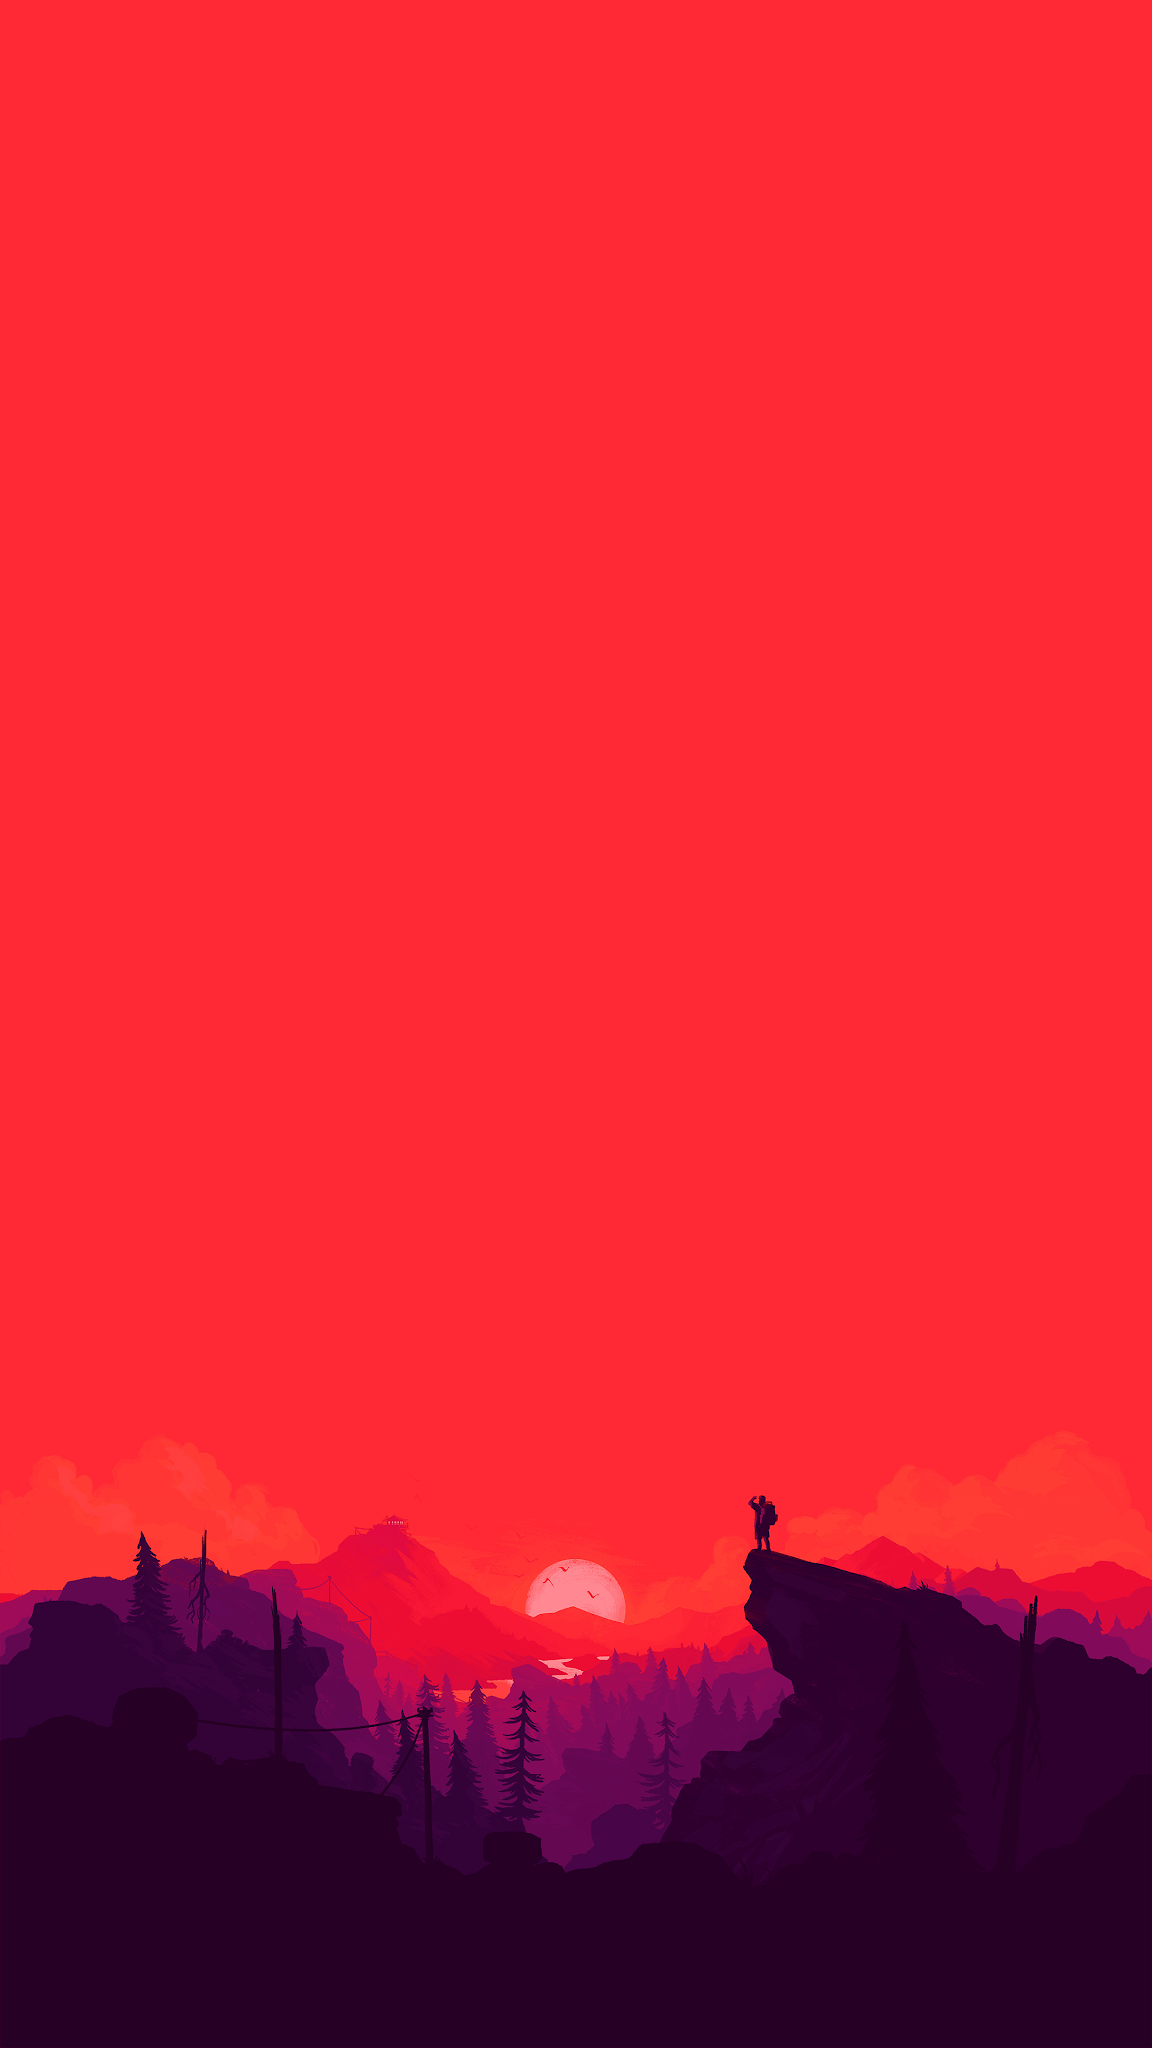 Minimalist sunset wallpaper